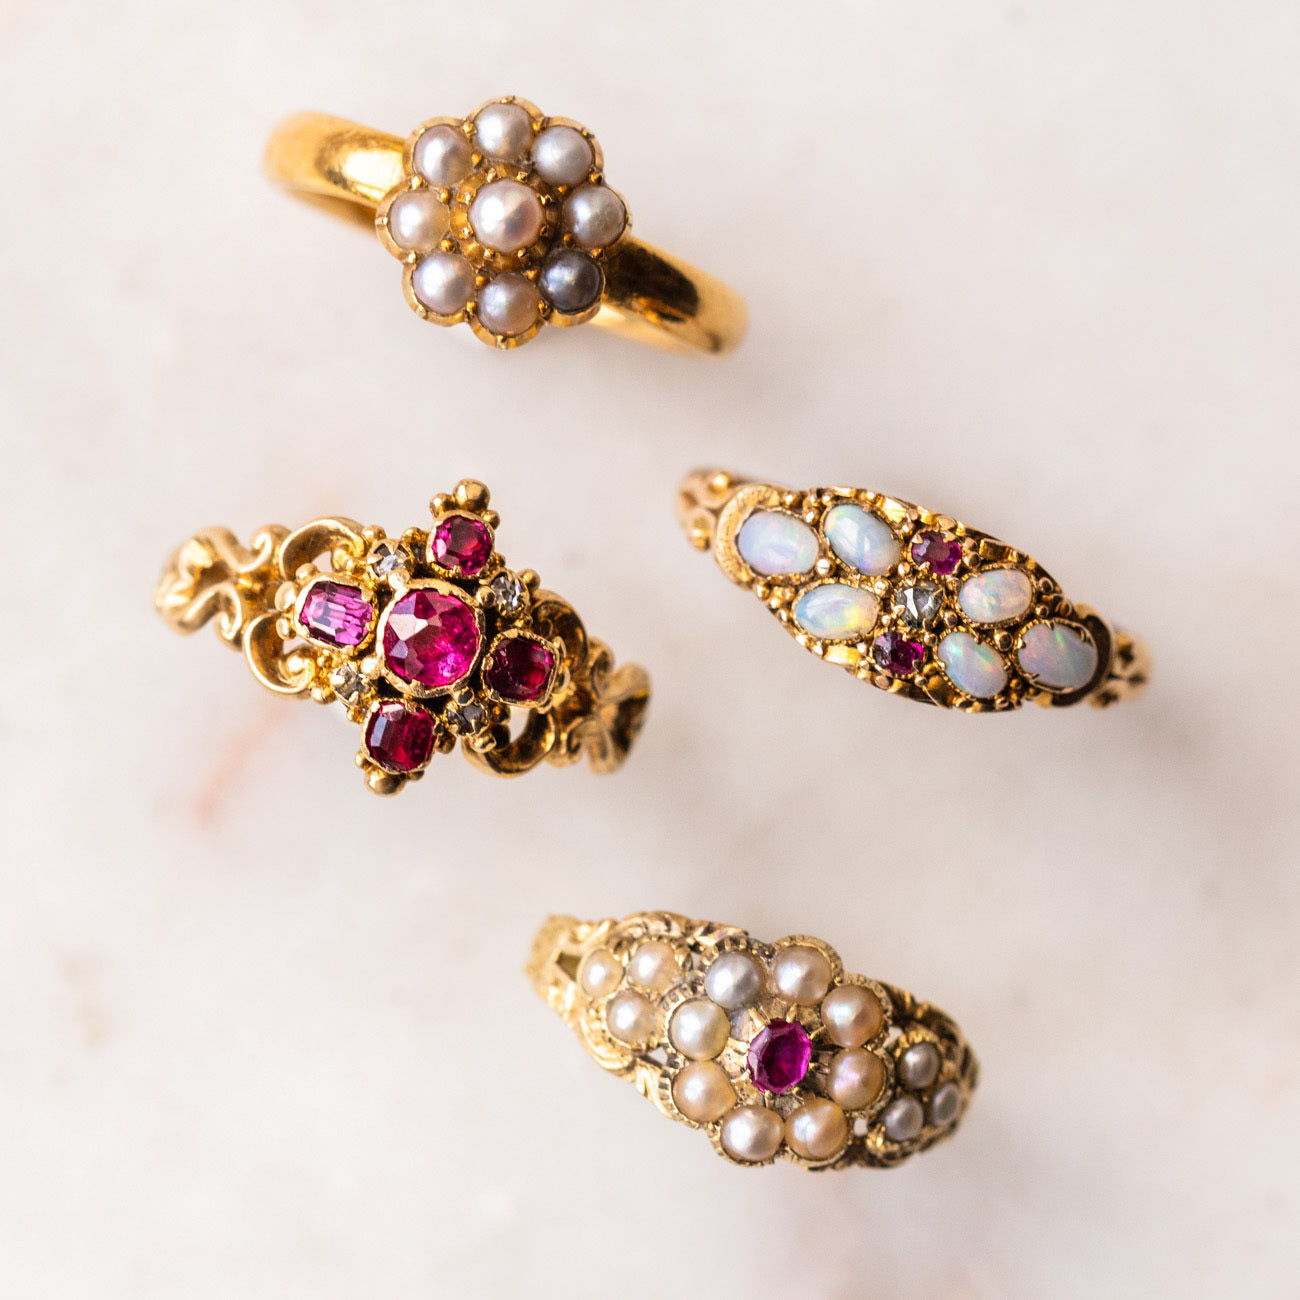 Berry Rapture Stud Earrings with Opal & Garnet